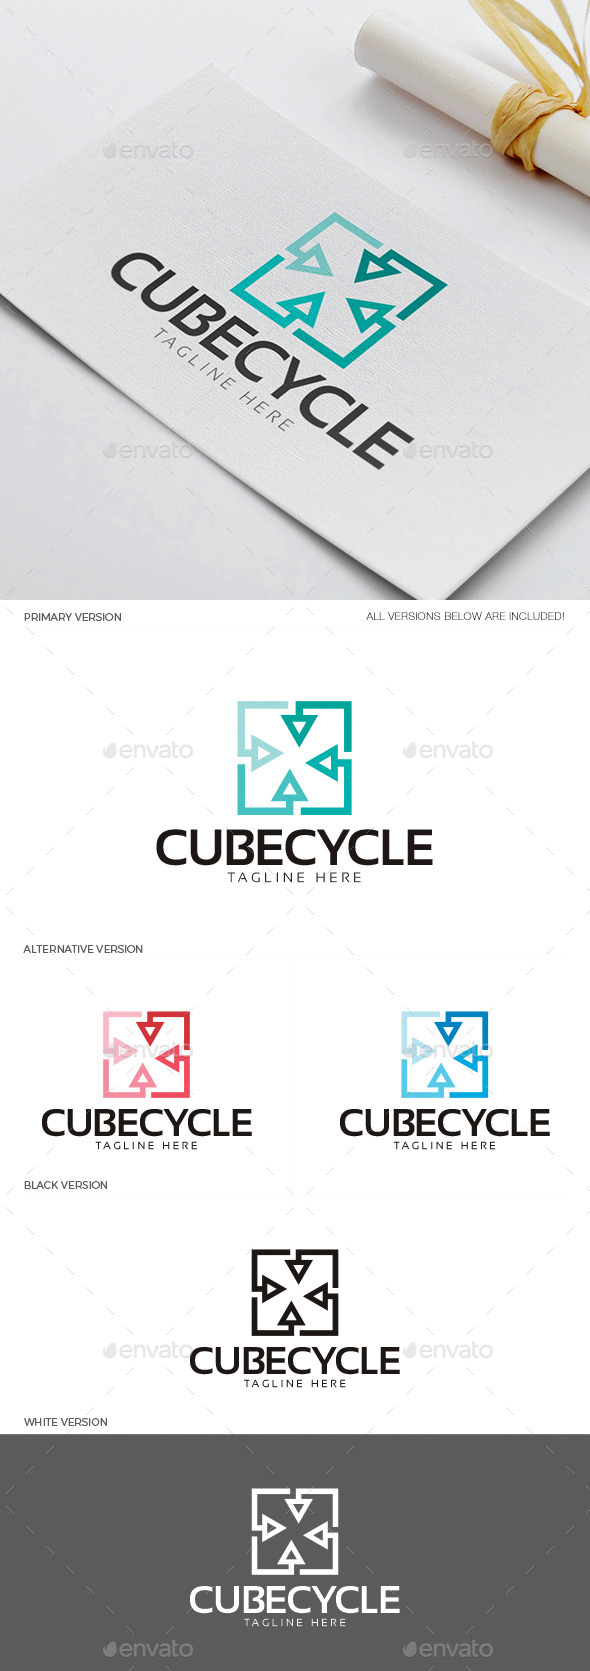 GraphicRiver Cube Cycle Logo 11850580